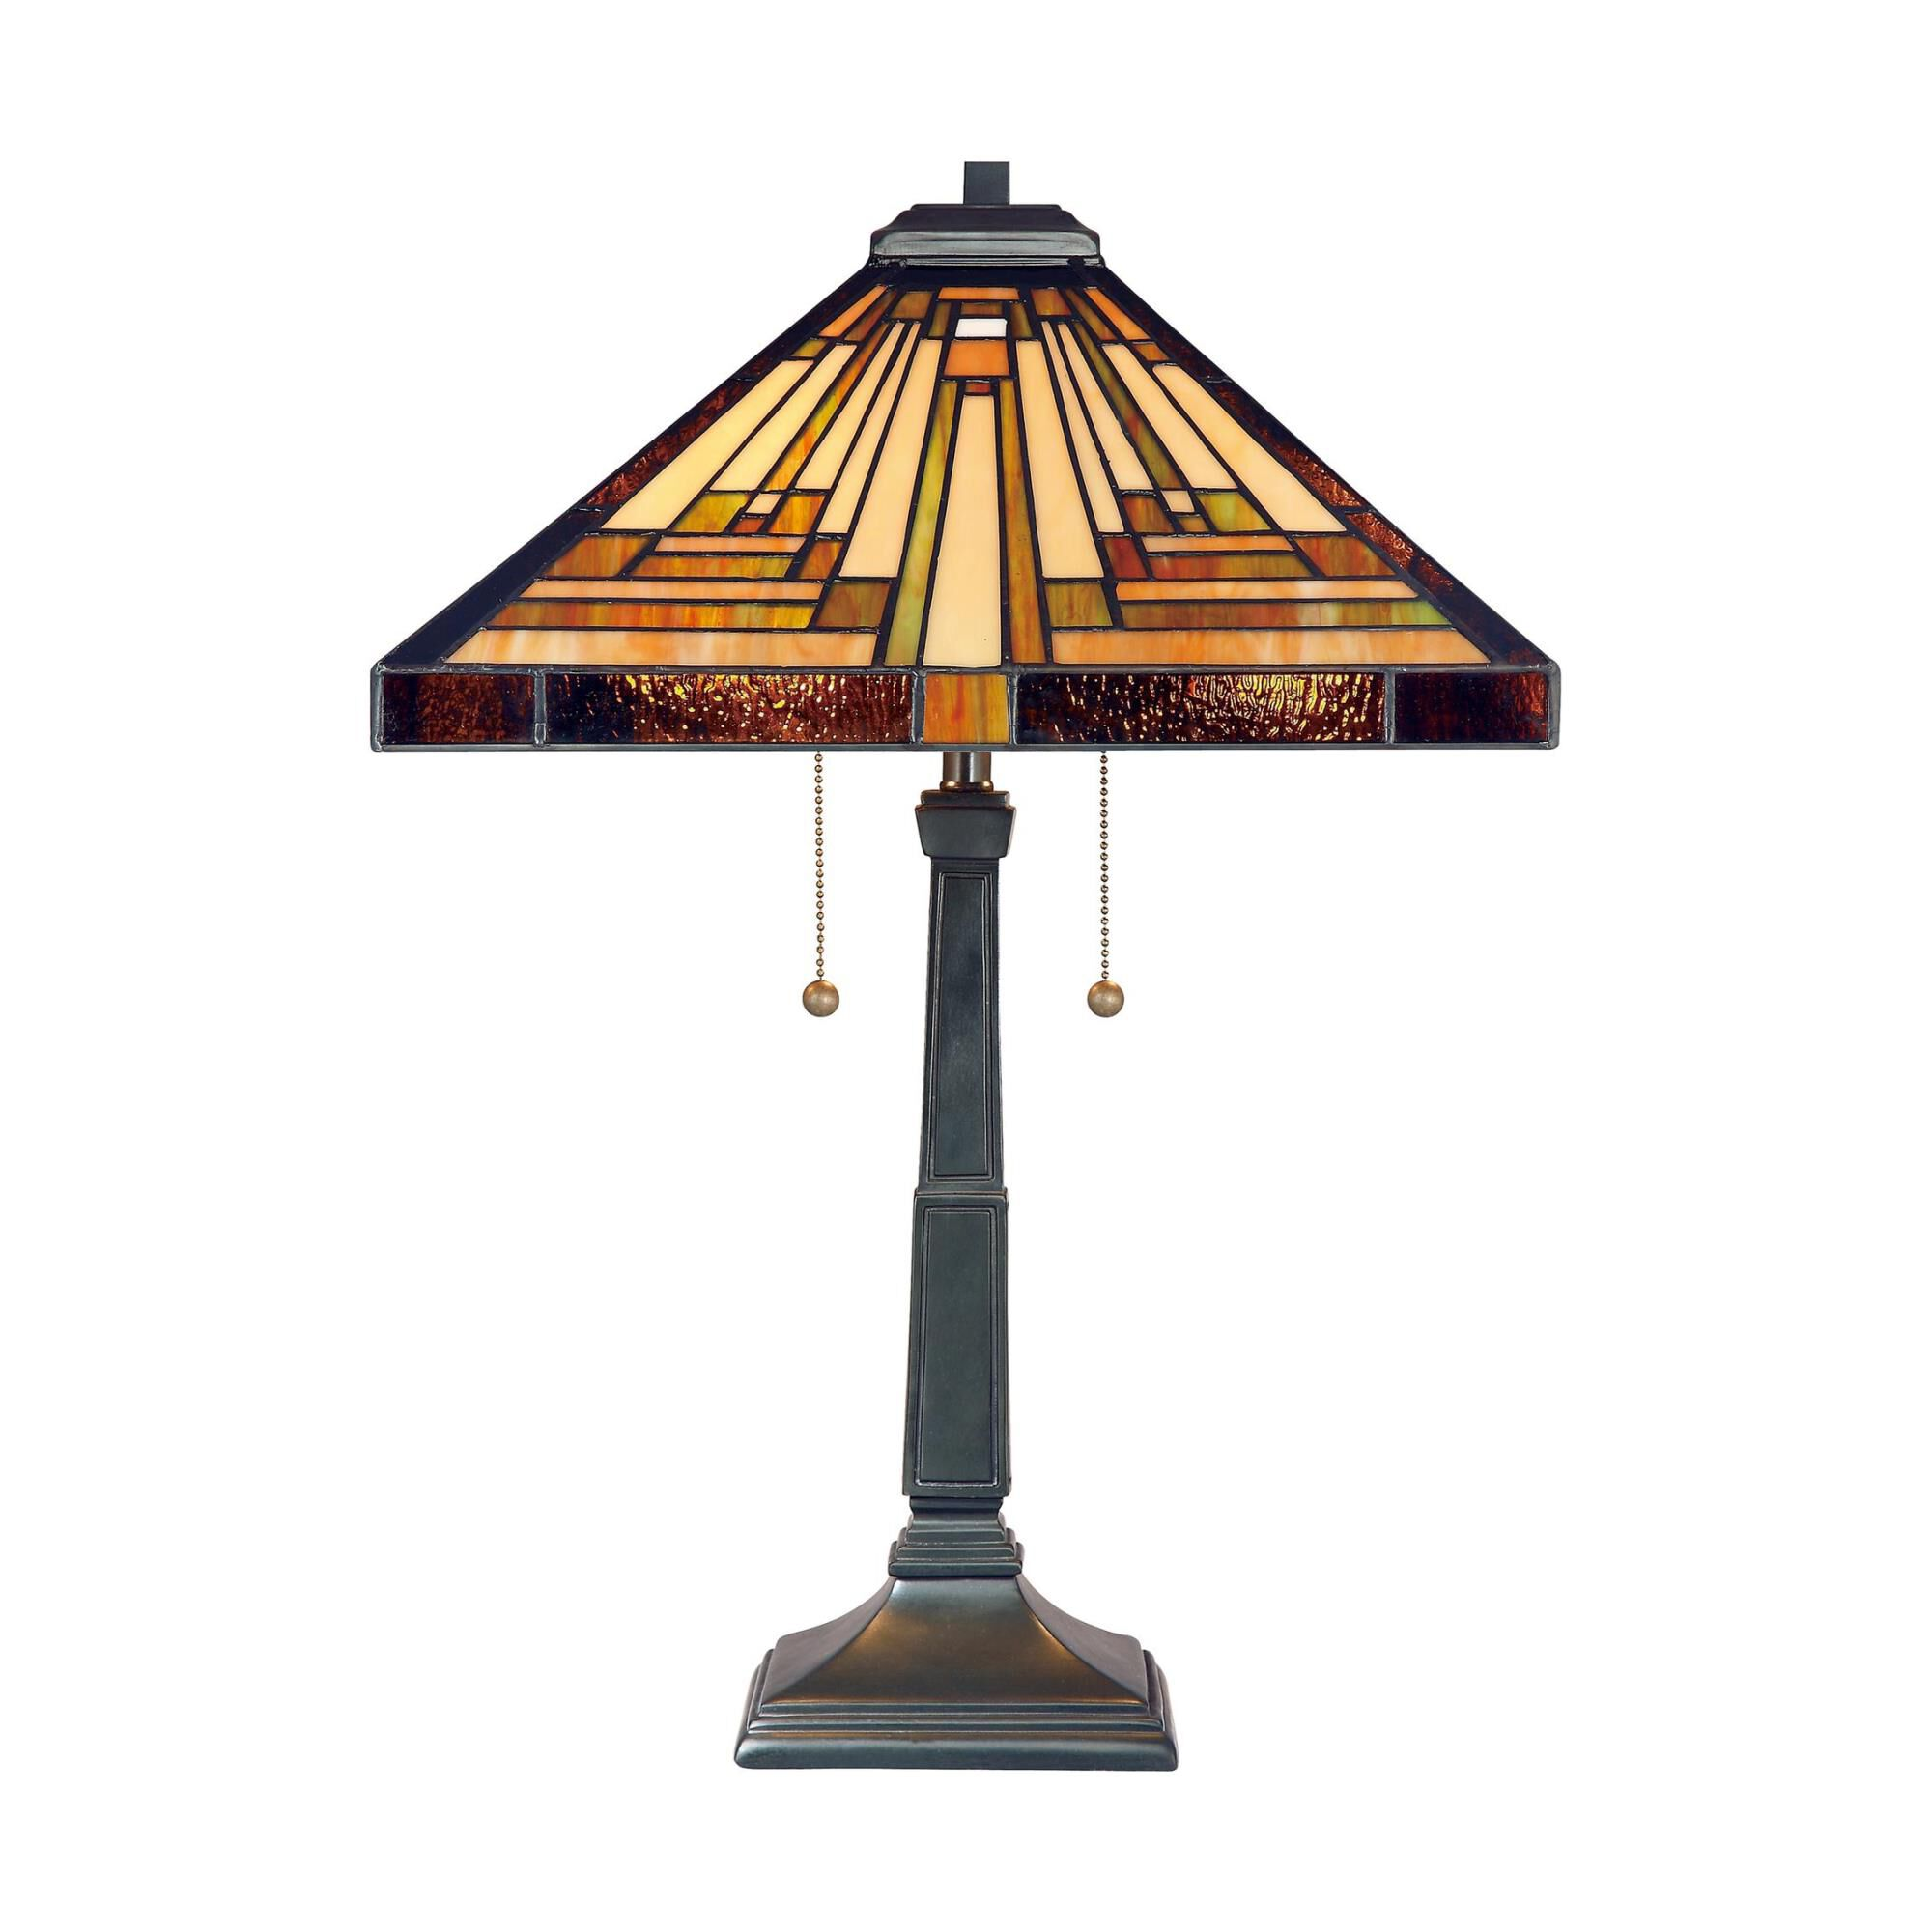 Quoizel Stephen 23 Inch Table Lamp Stephen - TF885T - Tiffany Glass